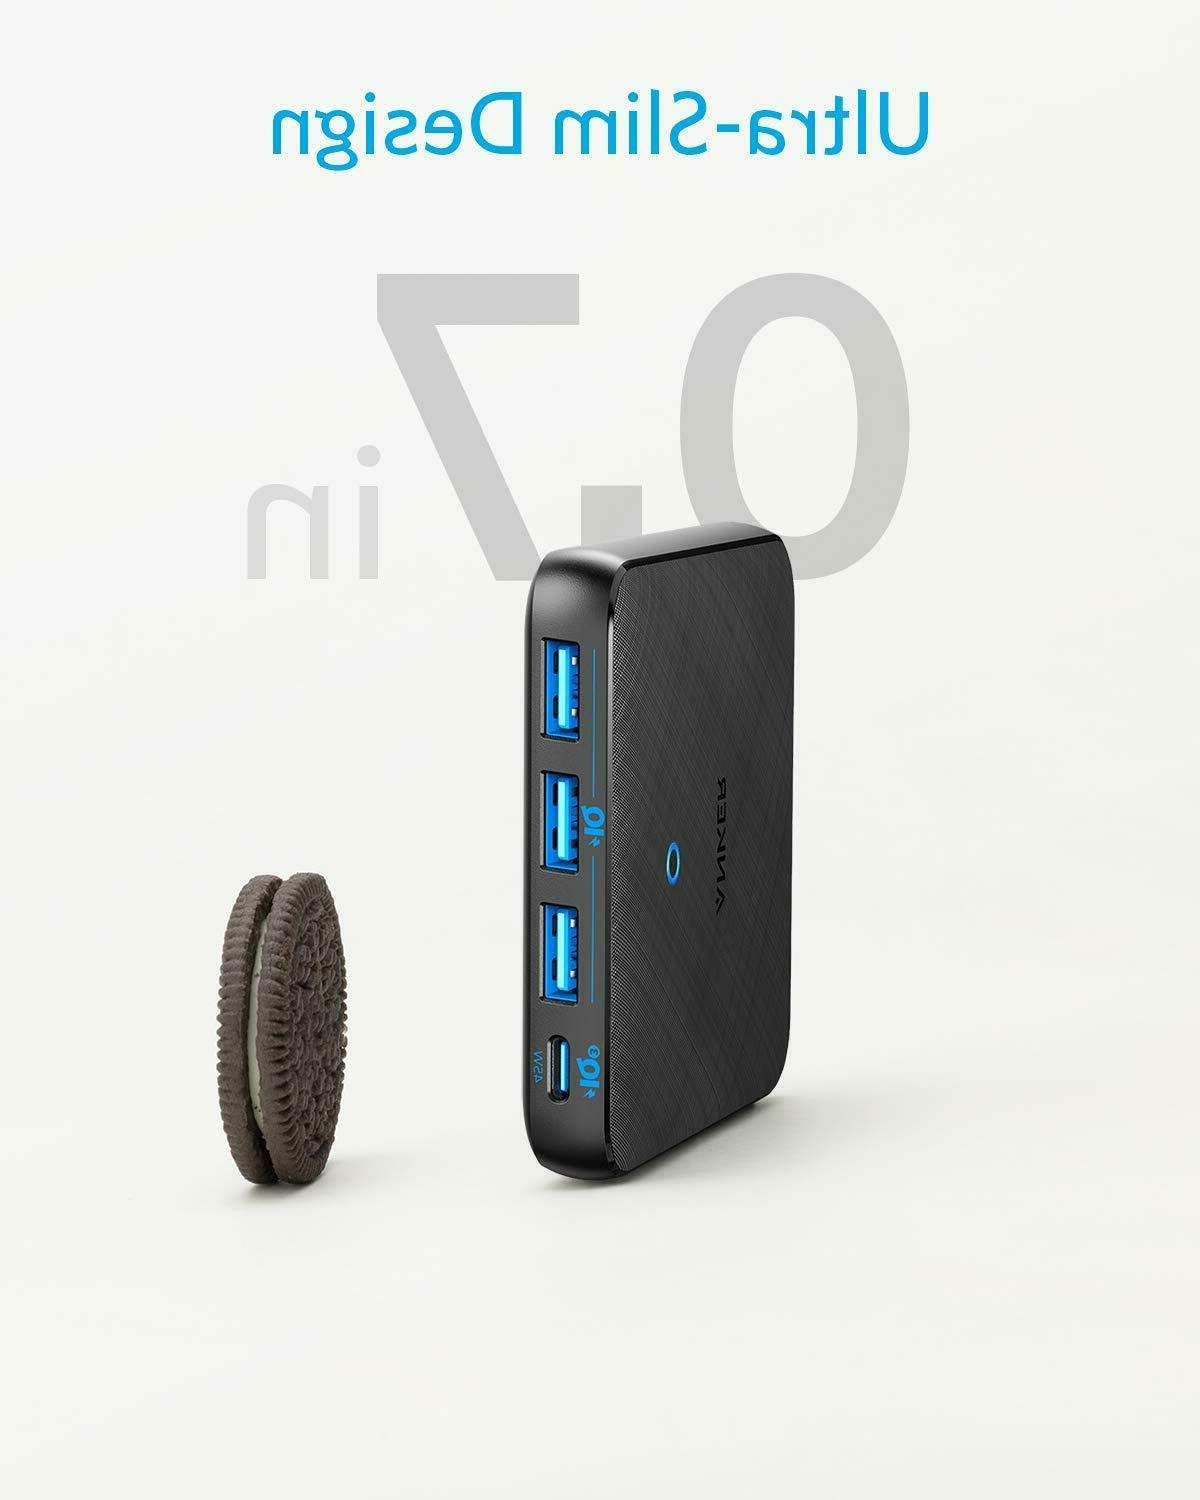 Anker 65W 4 PIQ 3.0 Fast Wall Charger Port